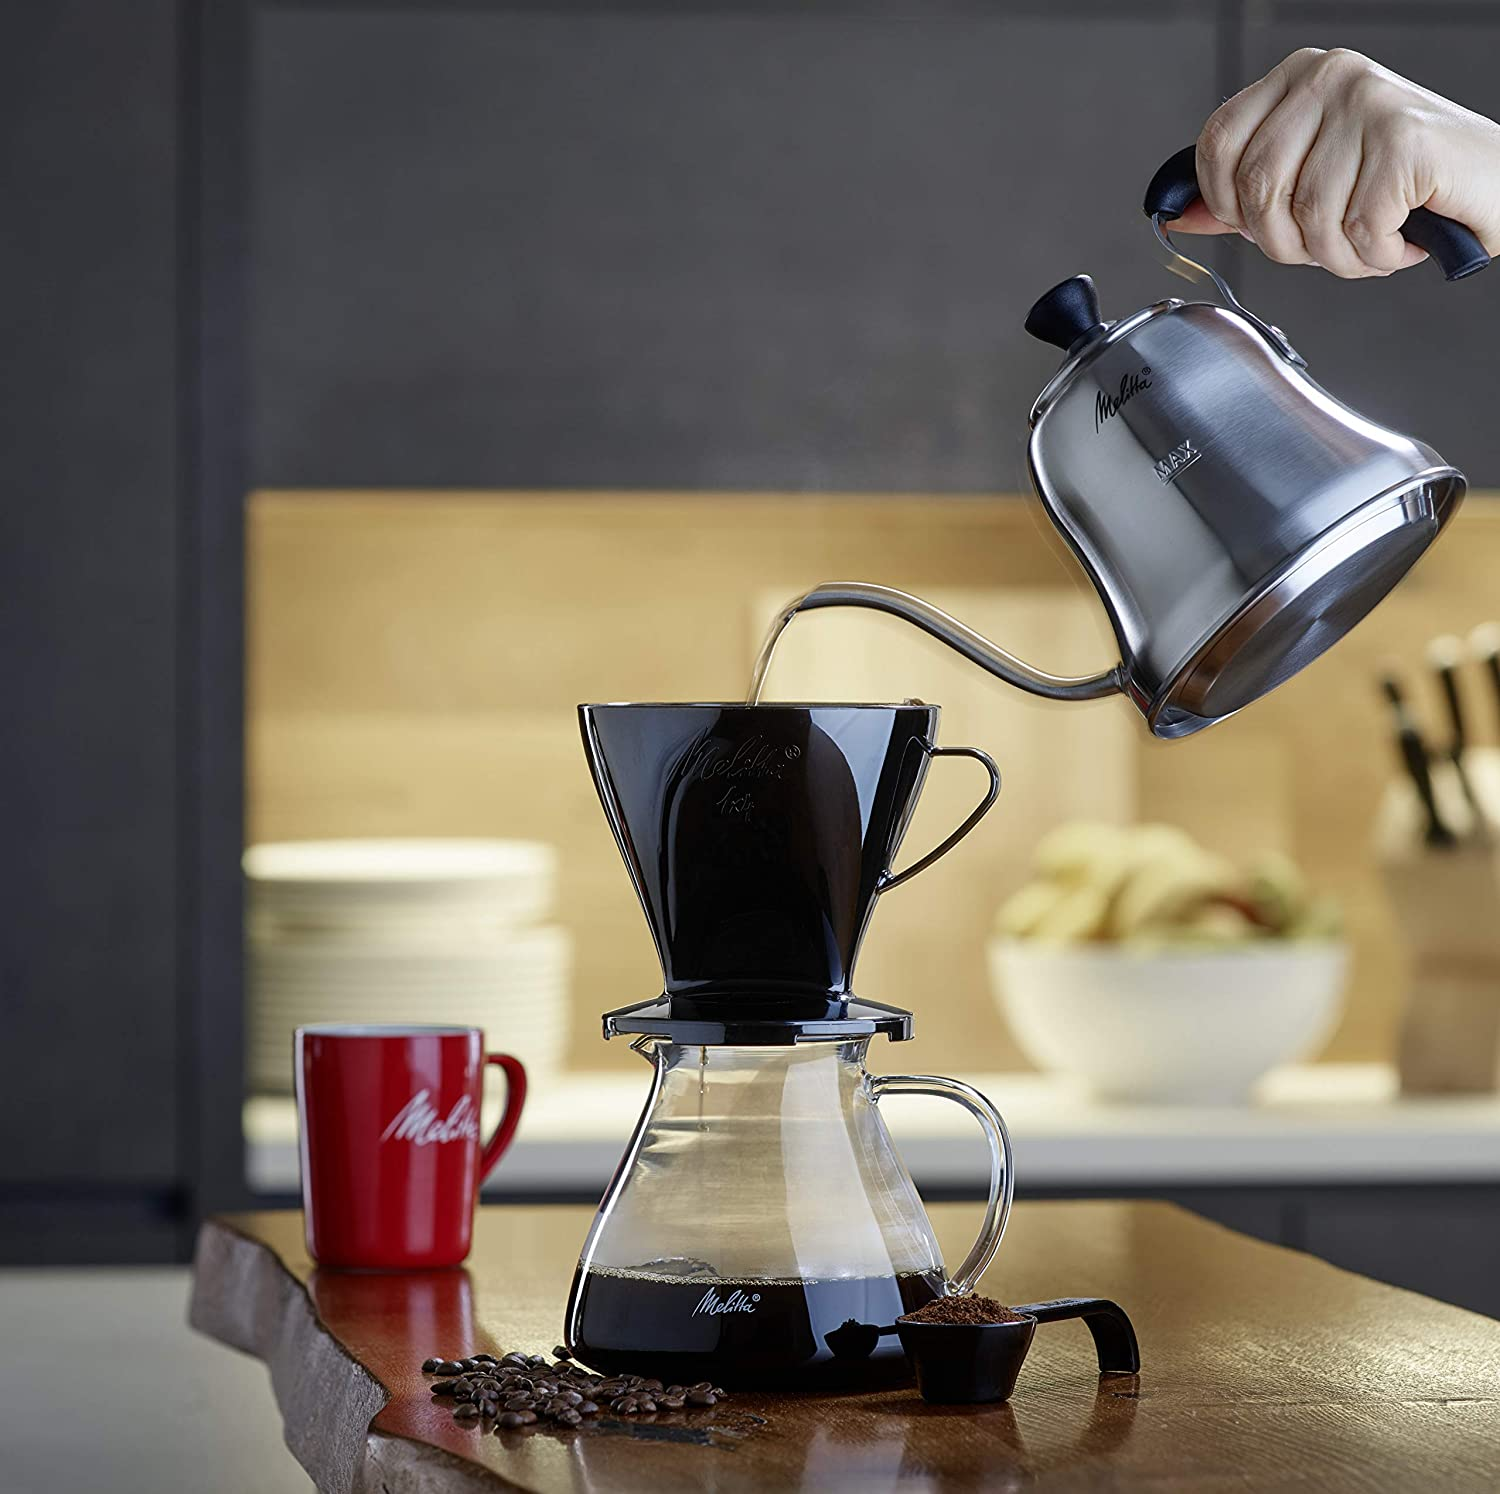 Melitta Gooseneck Kettle, Compatible with All Types of Cookers, Insulated Handle, 0.7 L, Pour Over, Stainless Steel